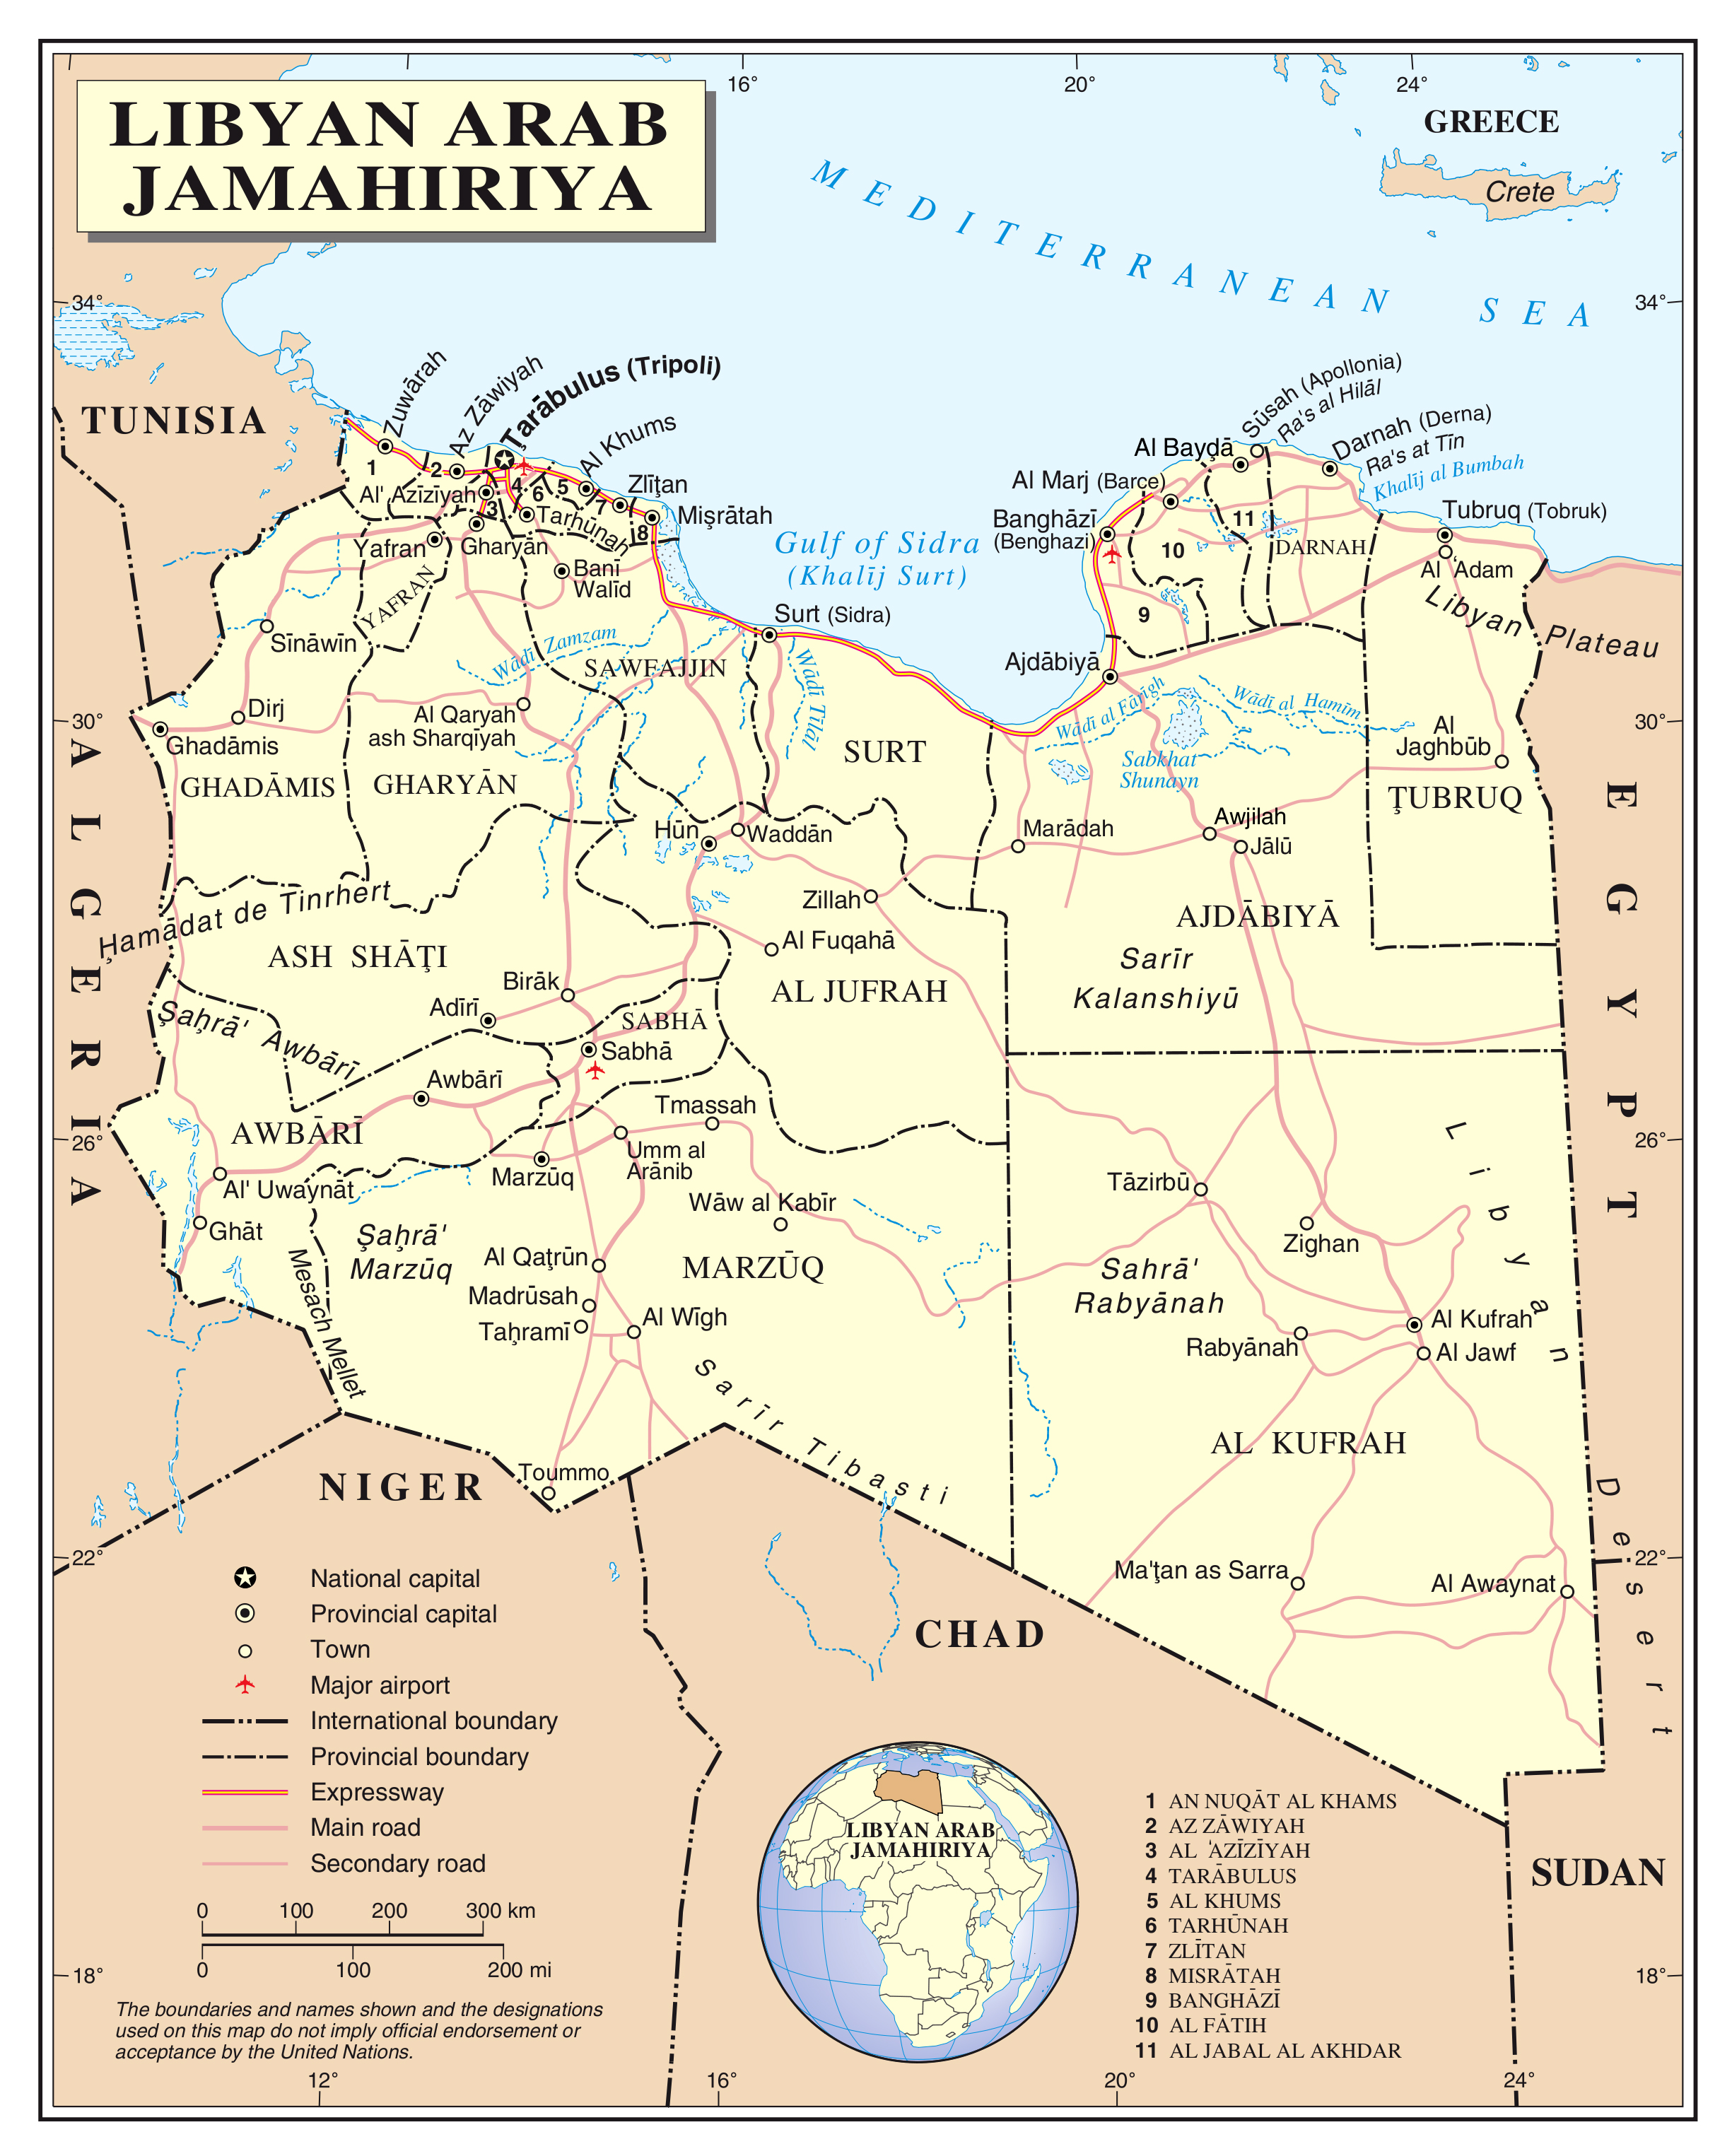 Large detailed political and administrative map of Libya with roads